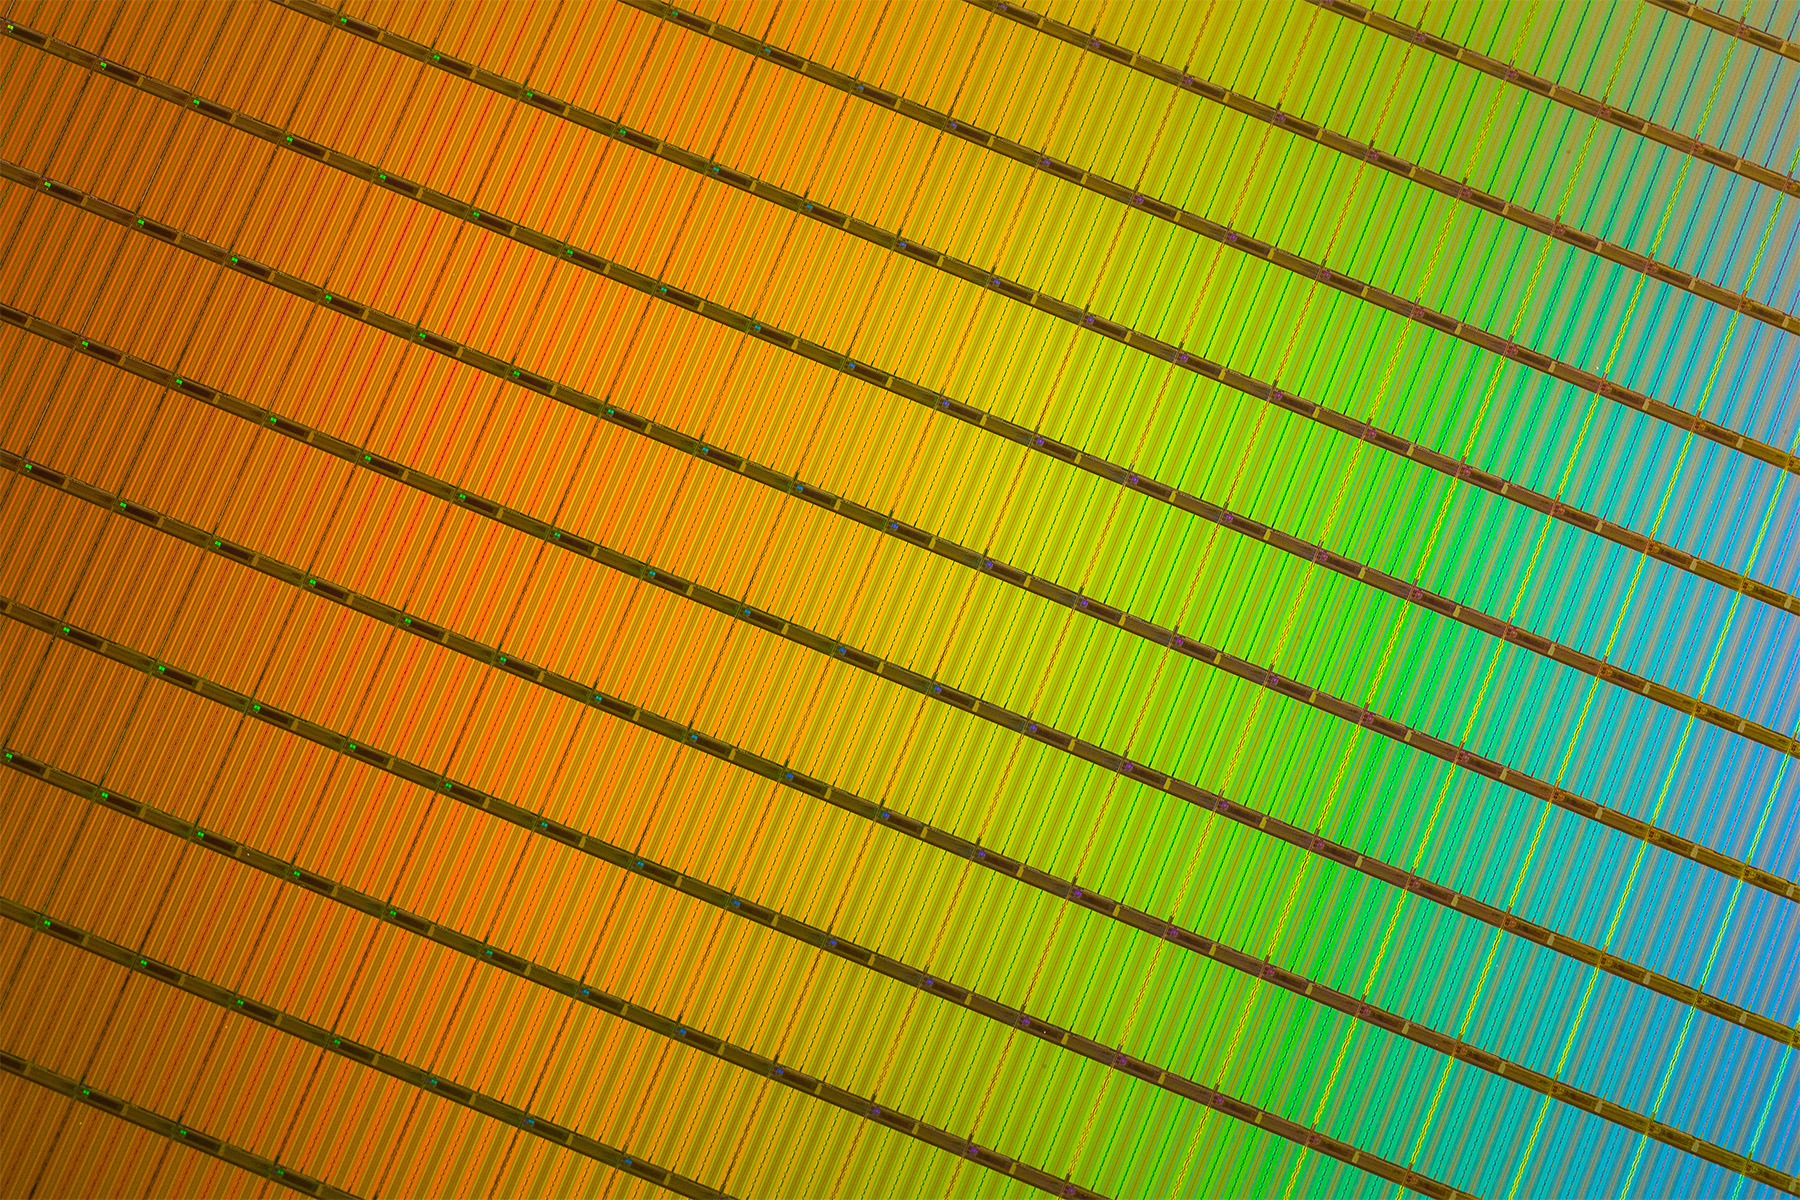 3D_NAND_Wafer_Close-Up.jpg